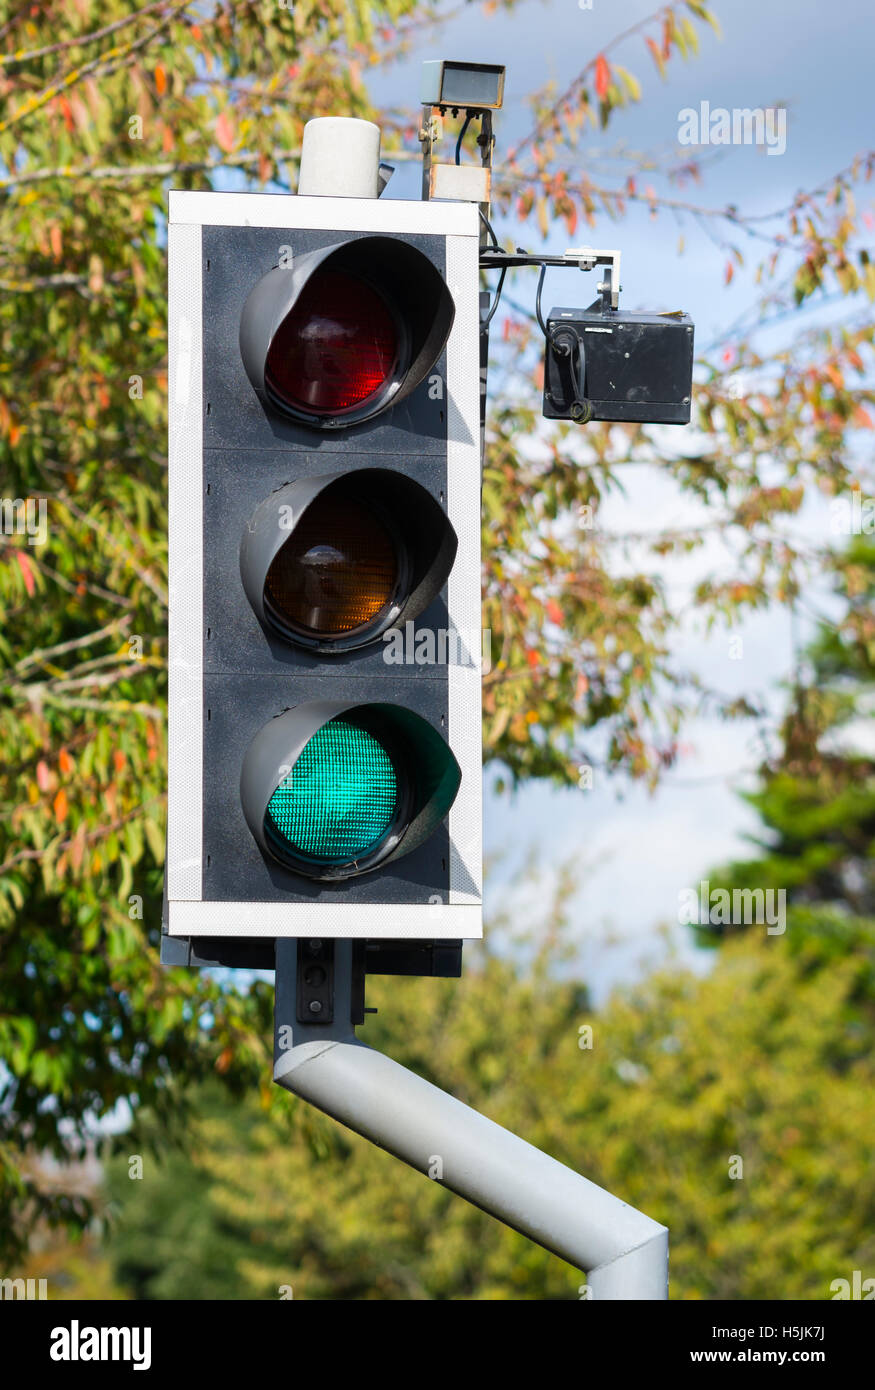 Traffic lights with camera at a pedestrian crossing in the UK. - Stock Image